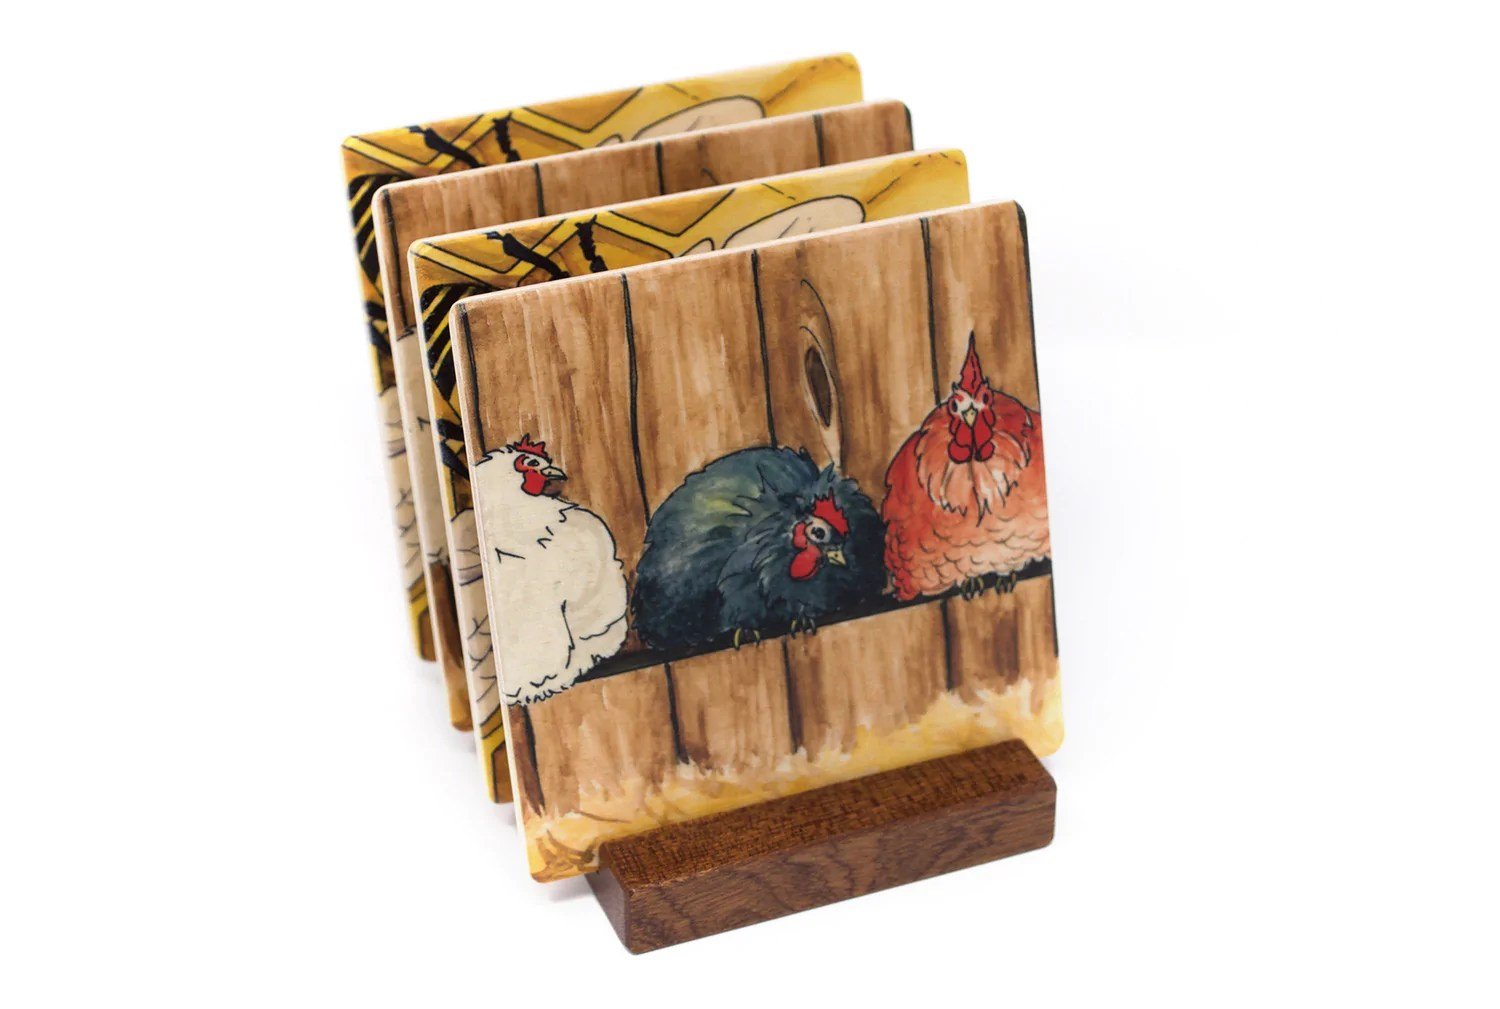 Wooden Coaster Holder Chickens And Honey Bee Wood Coasters From Original Paintings By Christi Sobel Set Of 4 Or 6 Wooden Coasters With Optional Holder